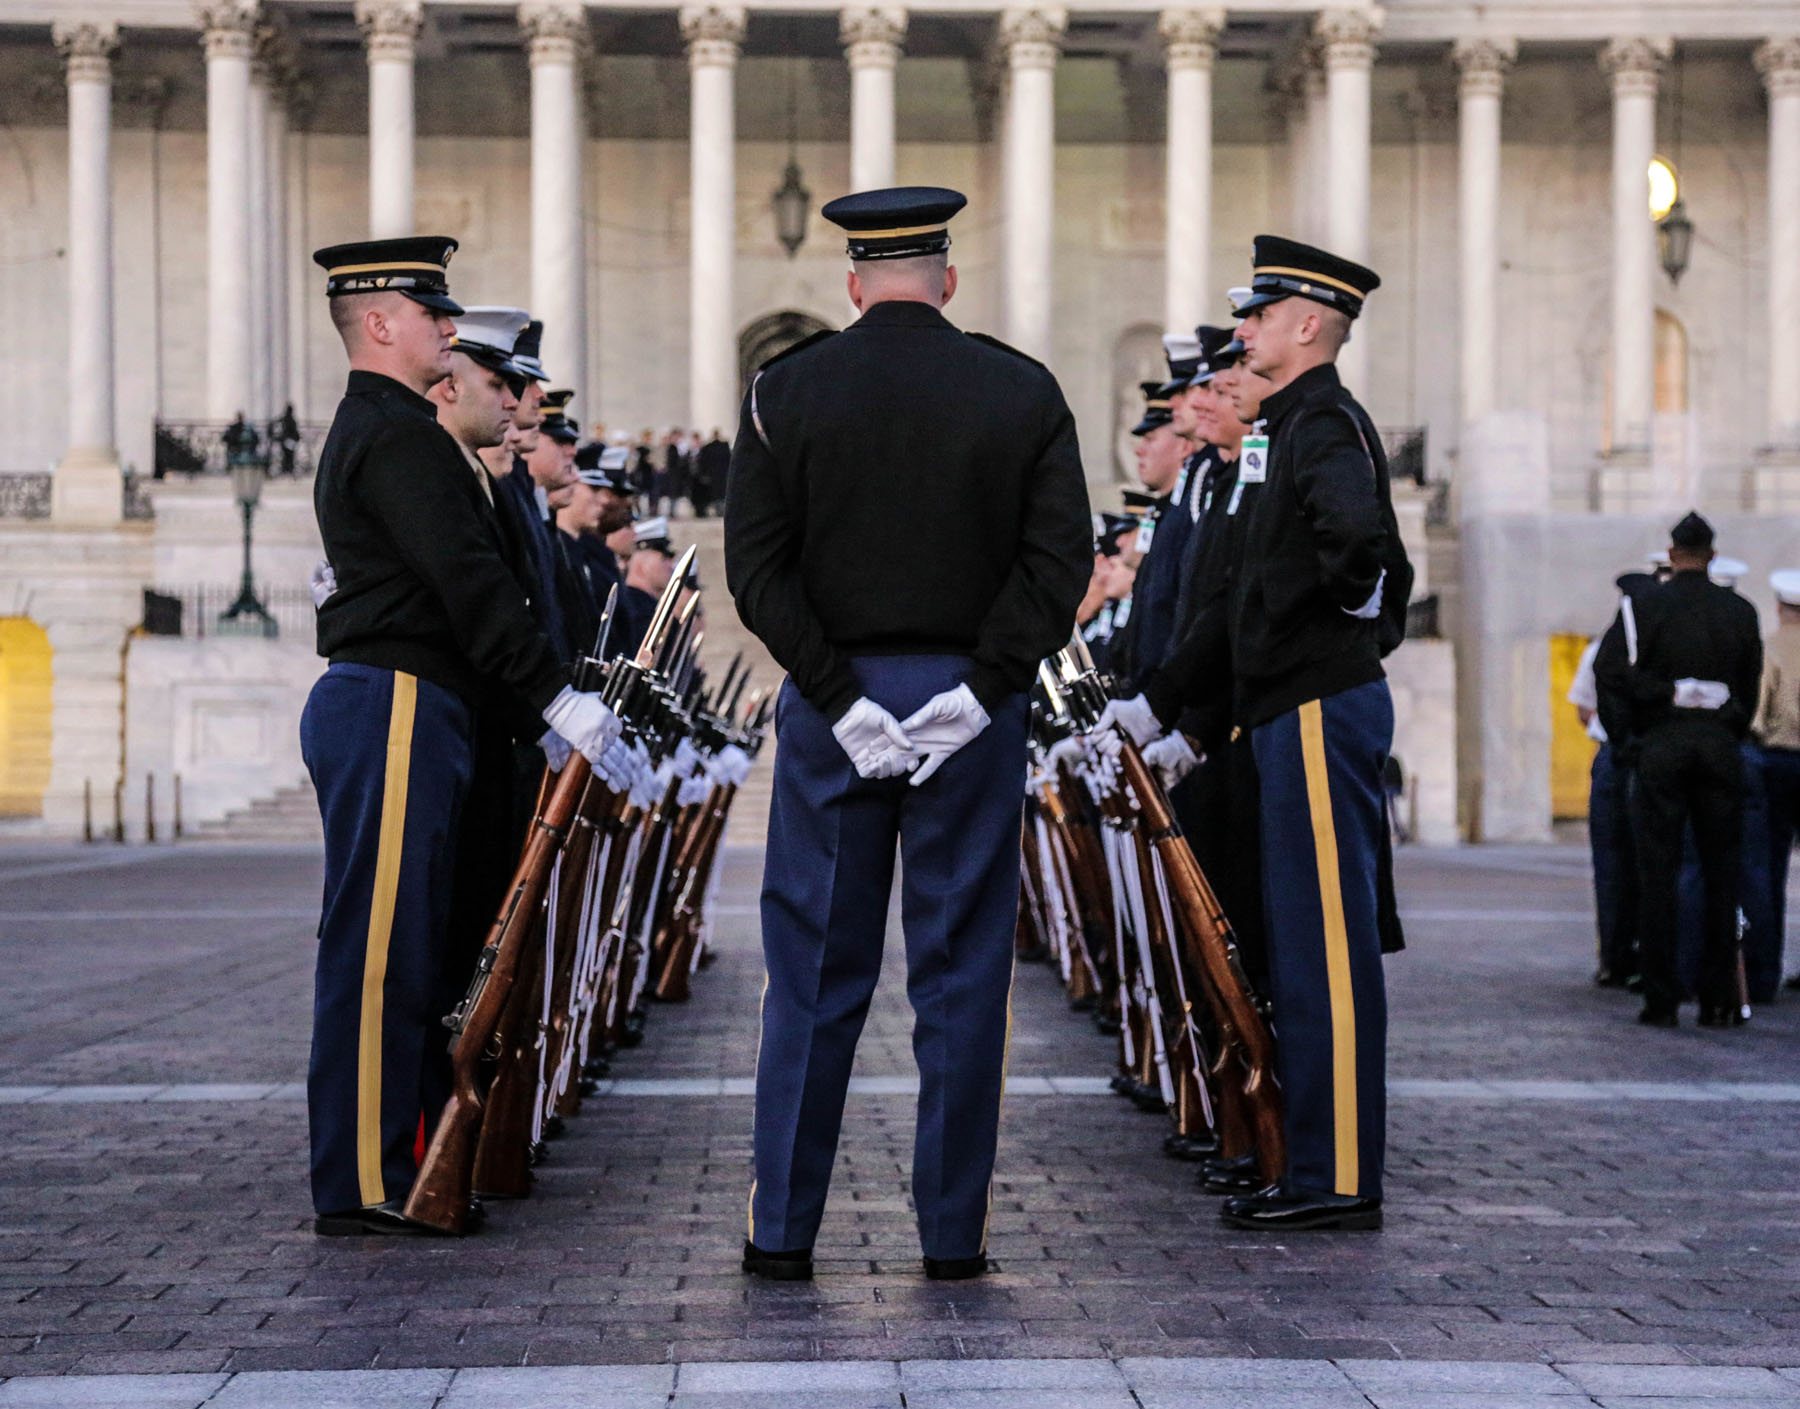 State Funeral, photo by: Pfc. Noel Toye